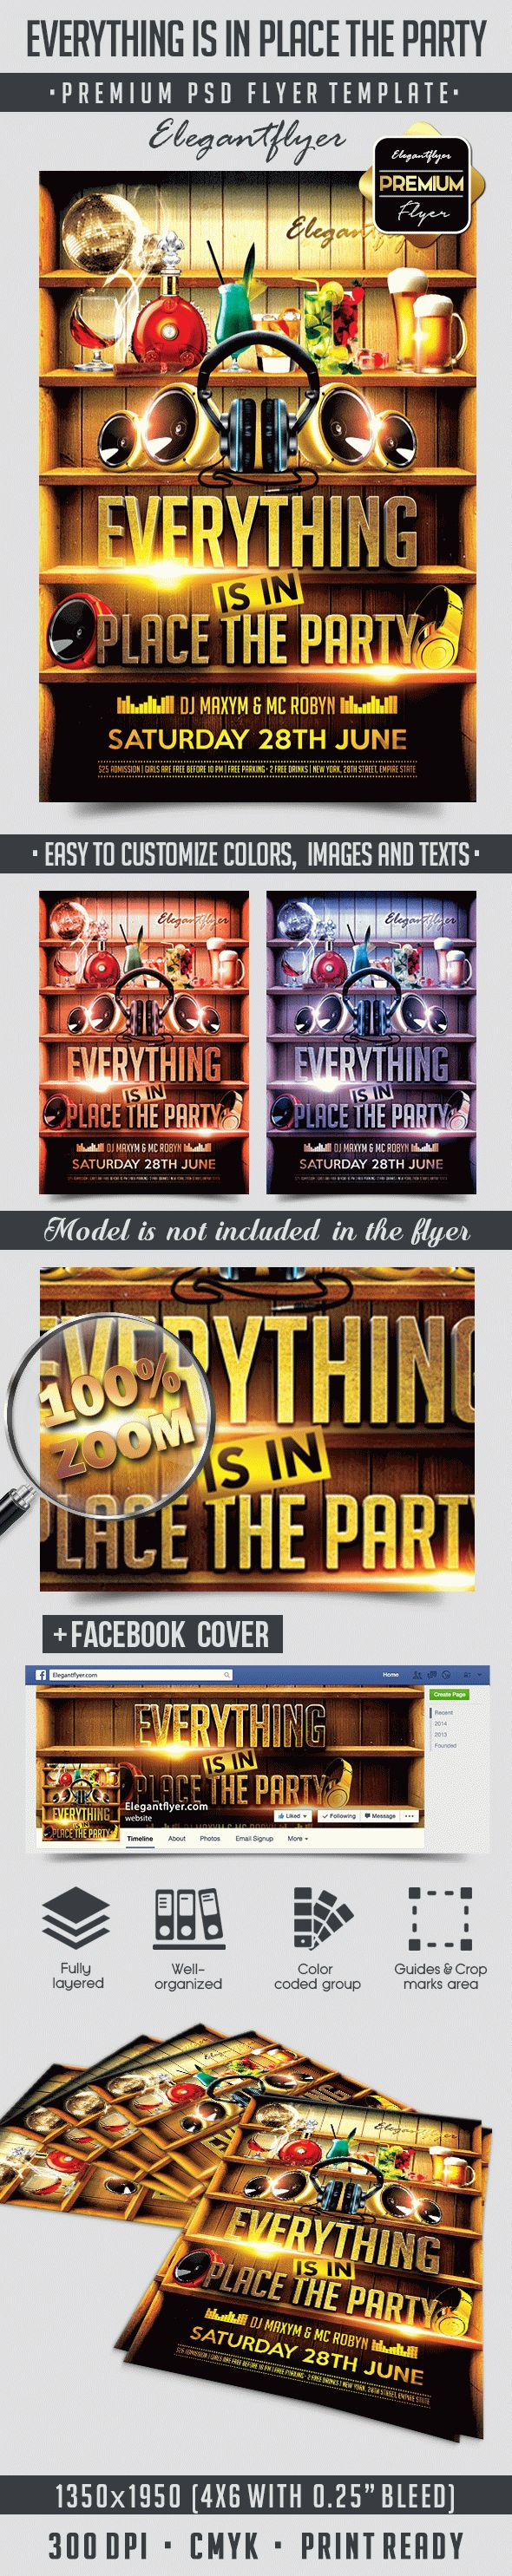 Everything is in Place the Party Flyer